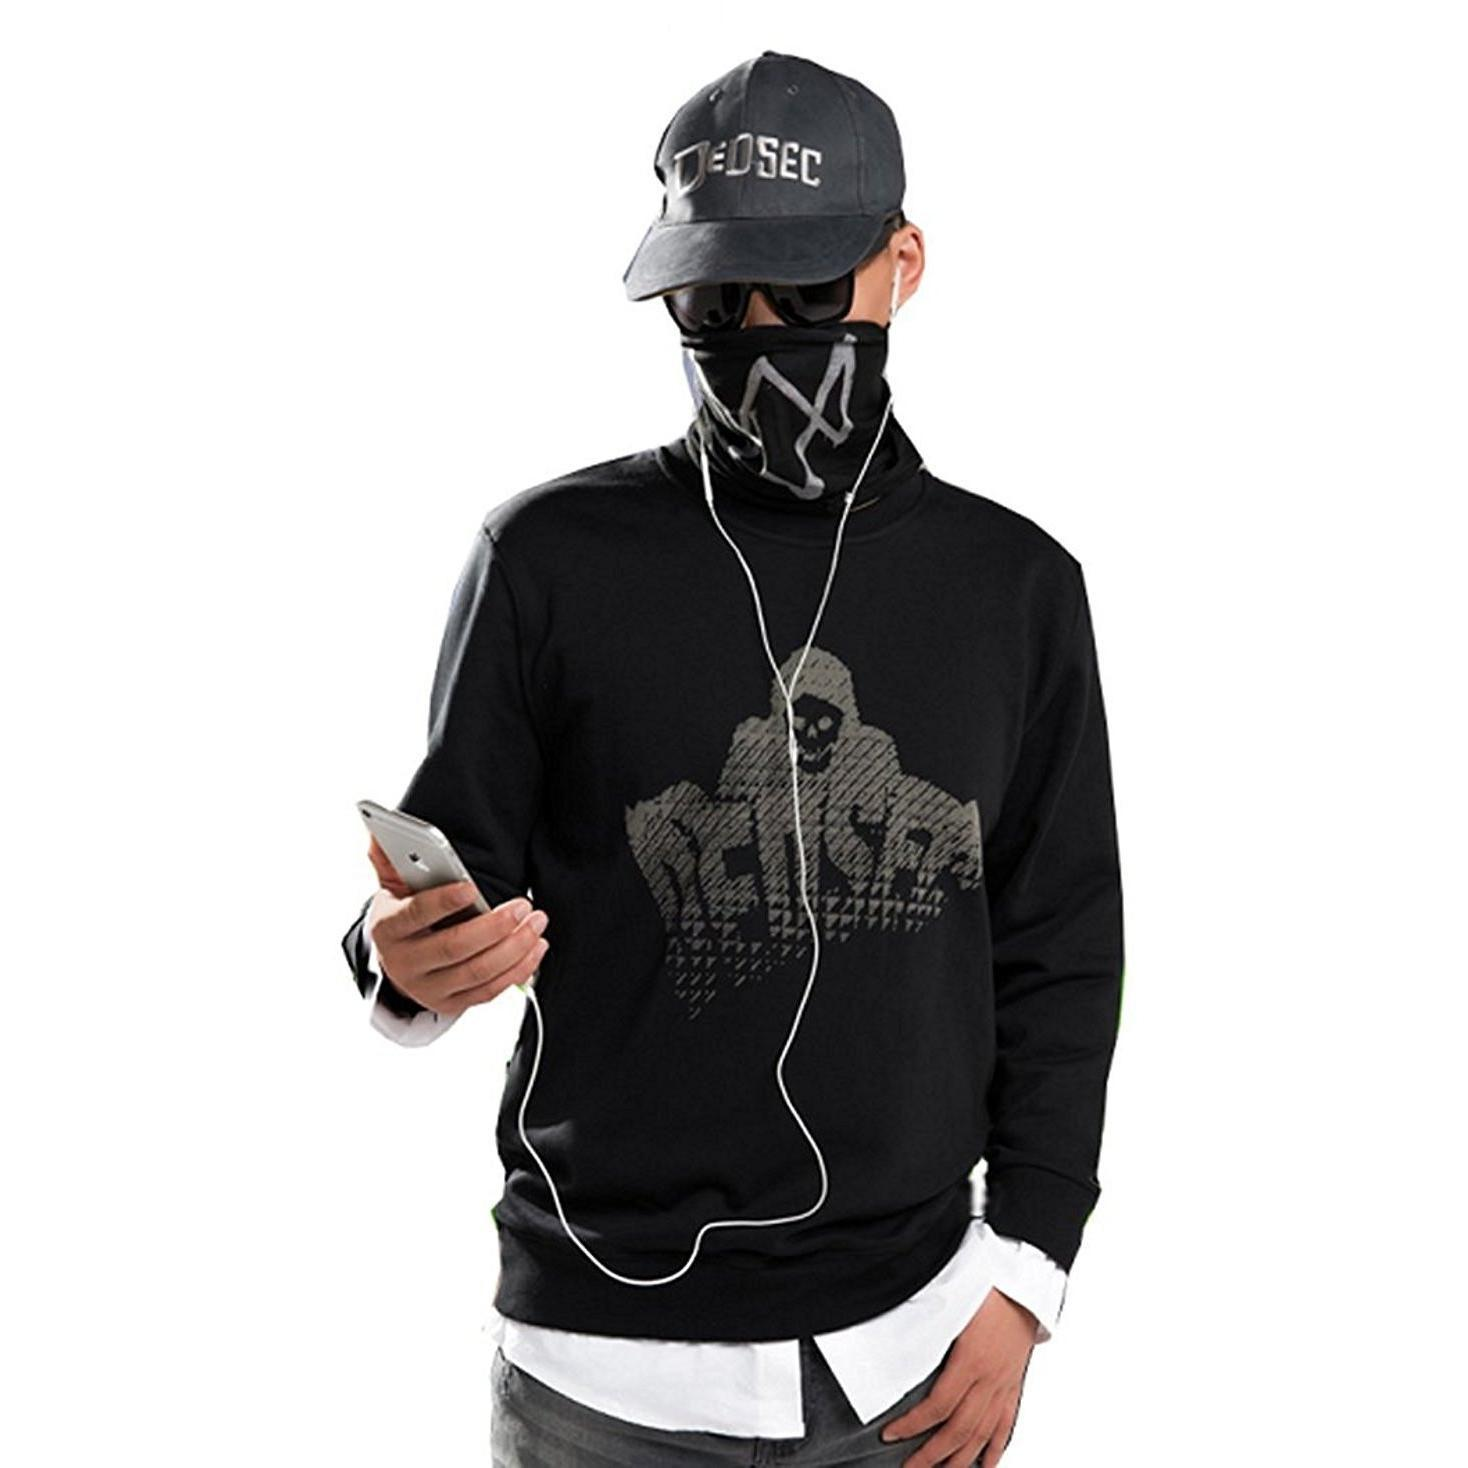 Primary image for Watch Dogs 2 Marcus Cosplay Long Sleeves Hoodie